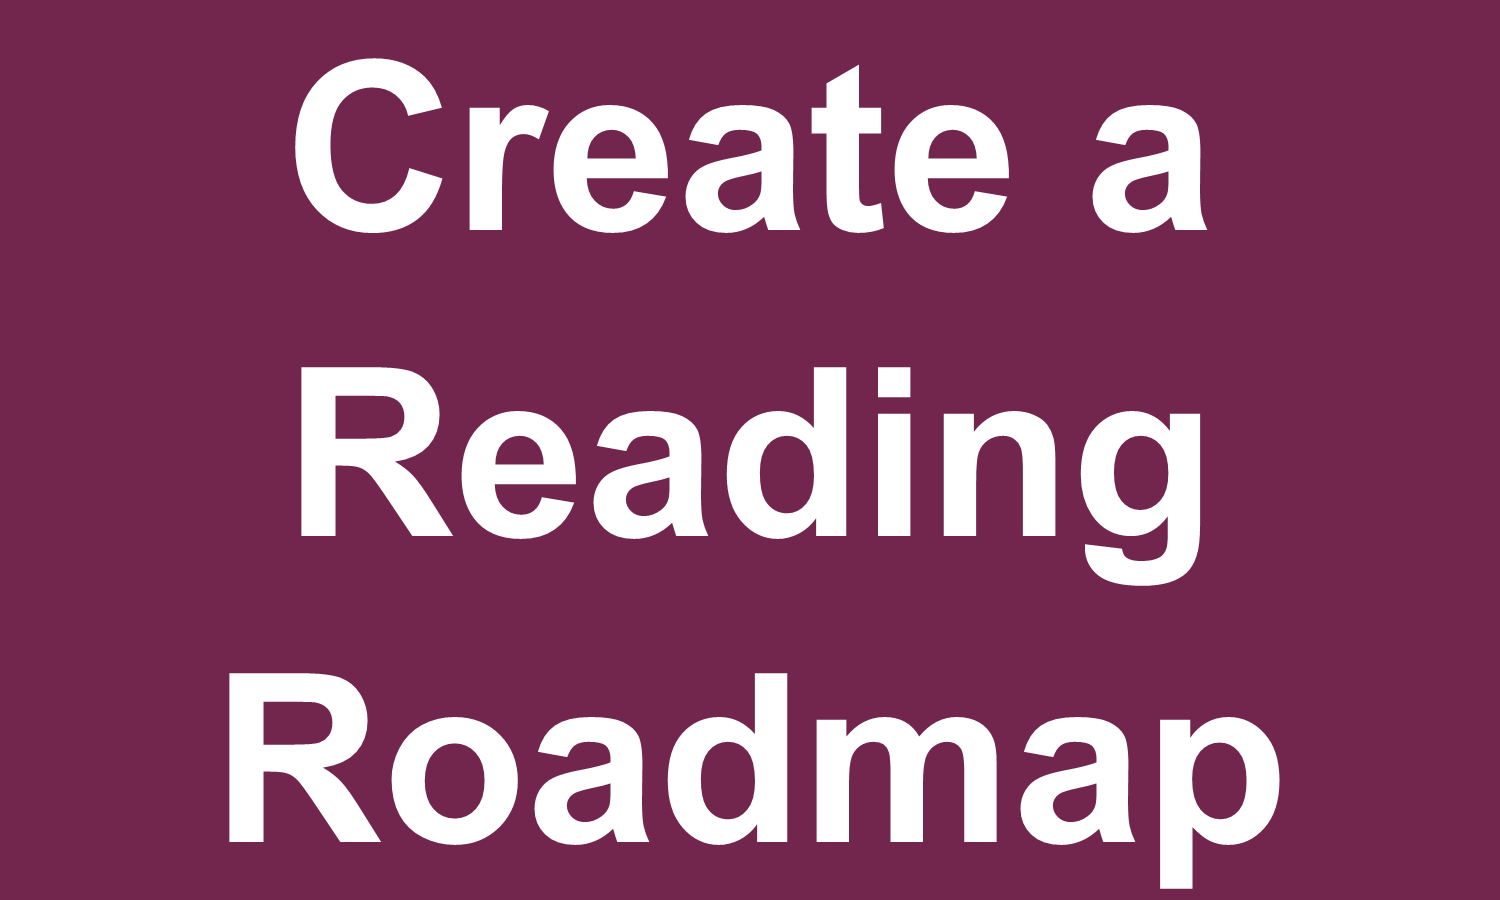 create-a-reading-roadmap-buttons-2022.png